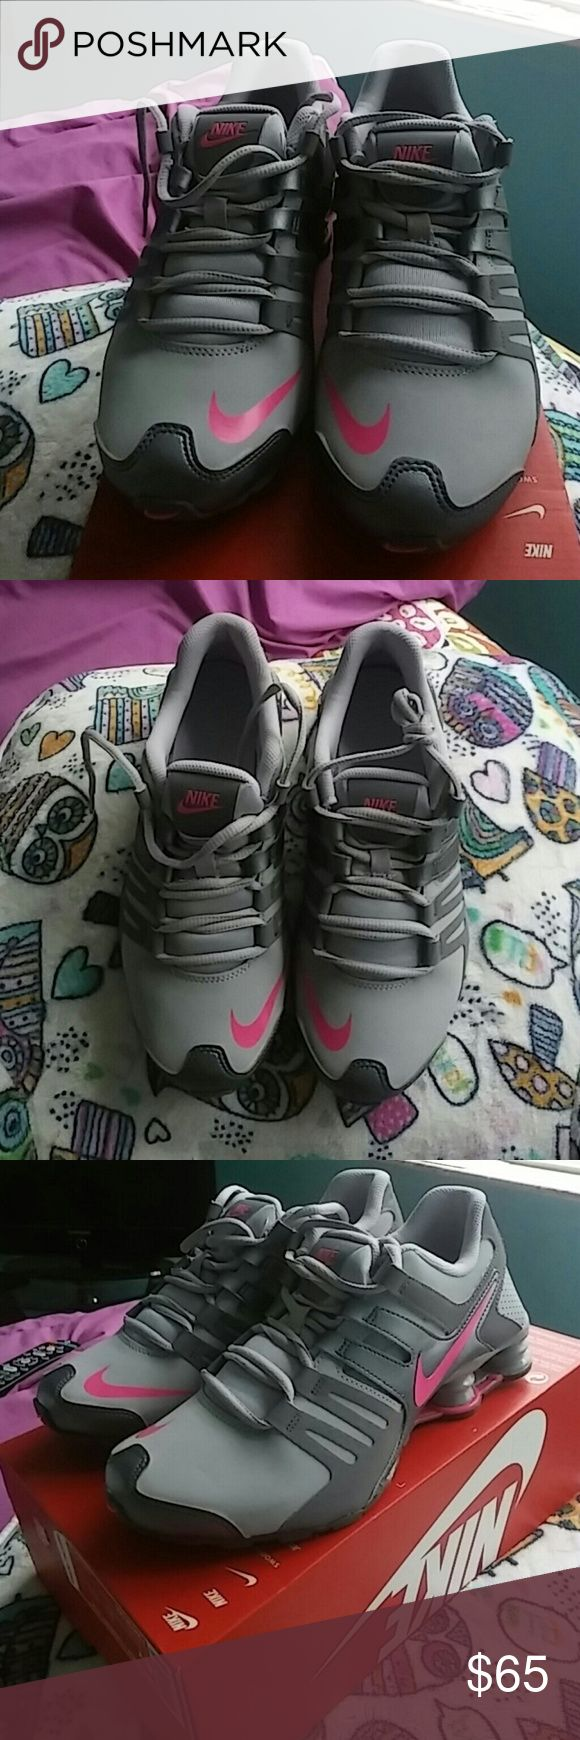 New Nike shox size 6Y This is a new pair of Nike Shocks Size 6 youth which is equal to a womens 7.5. The shoes are new never worn and they have original box but the top of the box is missing. Nike Shoes